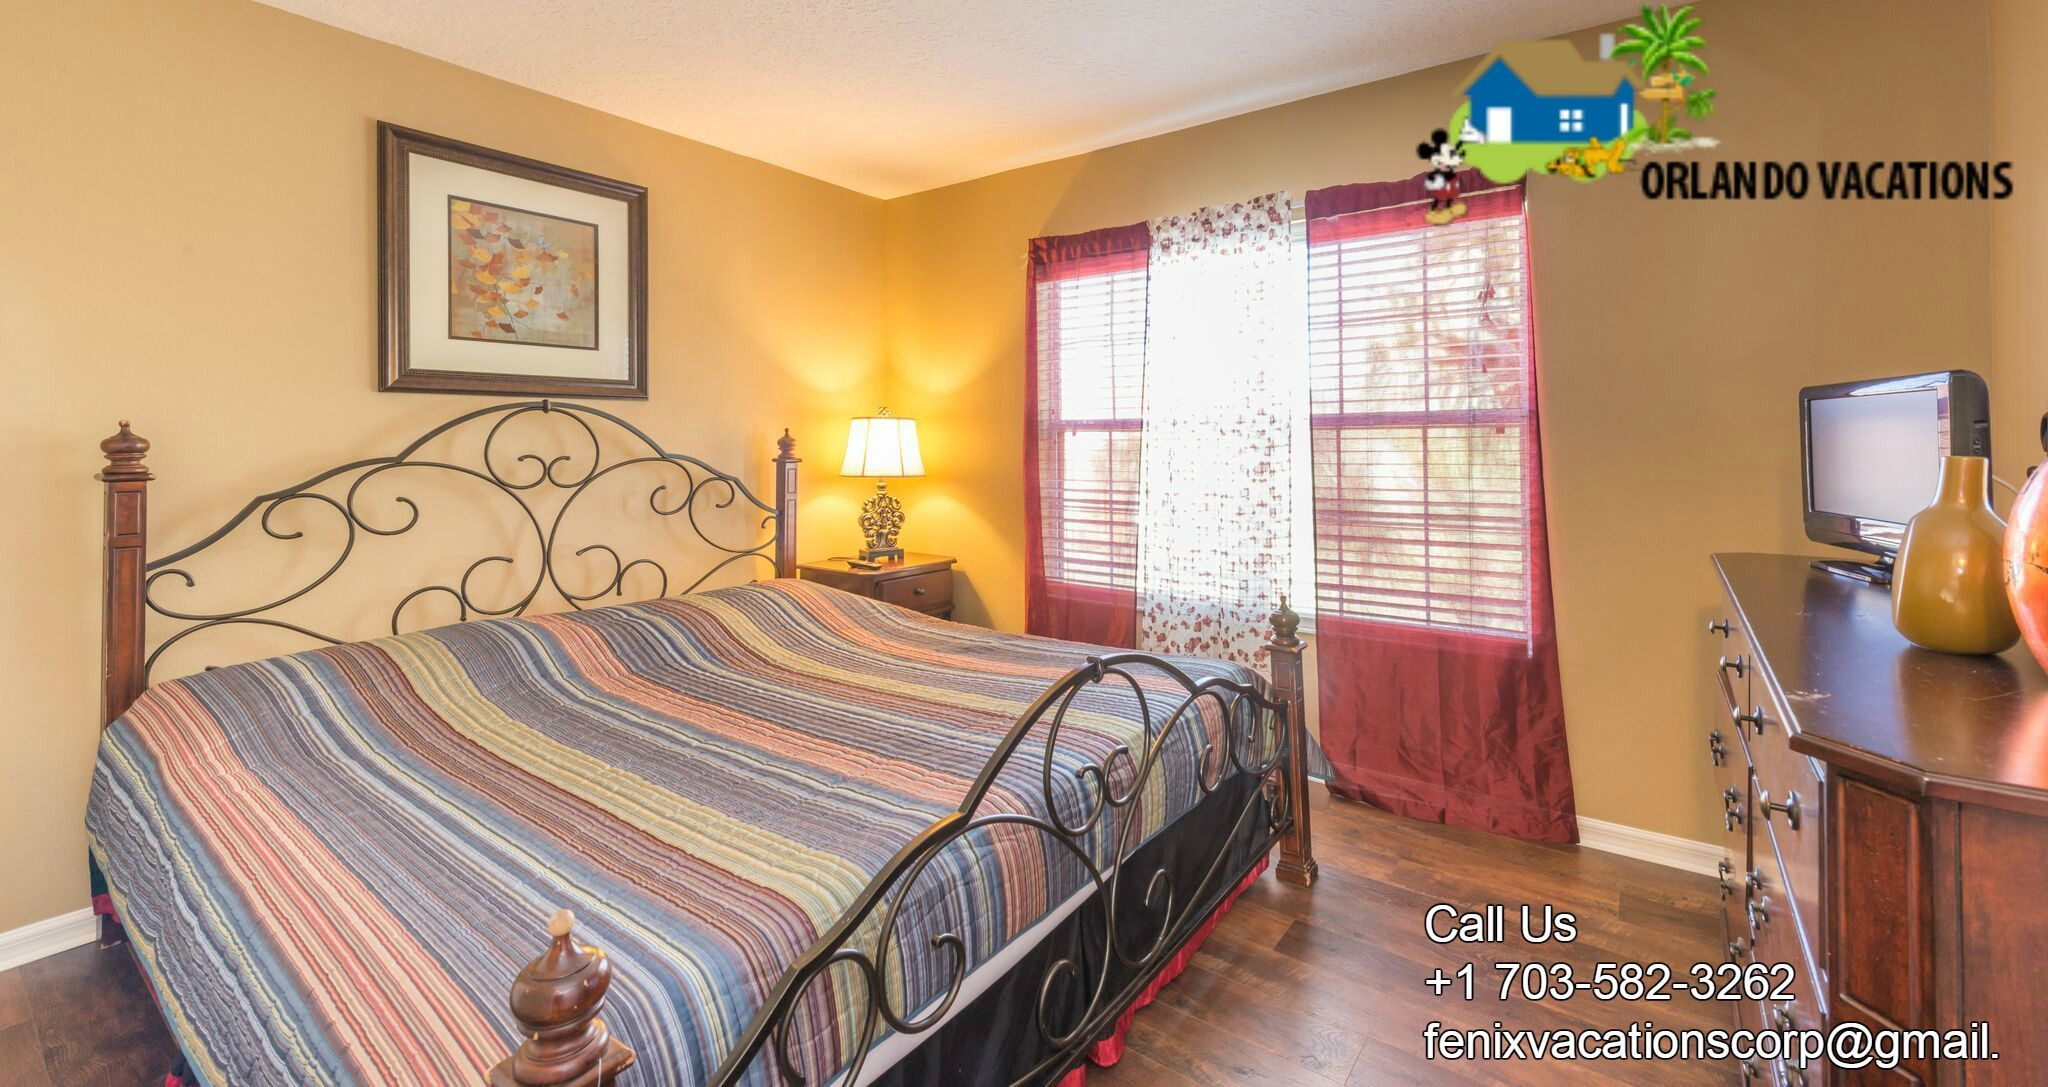 3 Bedroom Houses for Rent in Orlando Vacation rentals